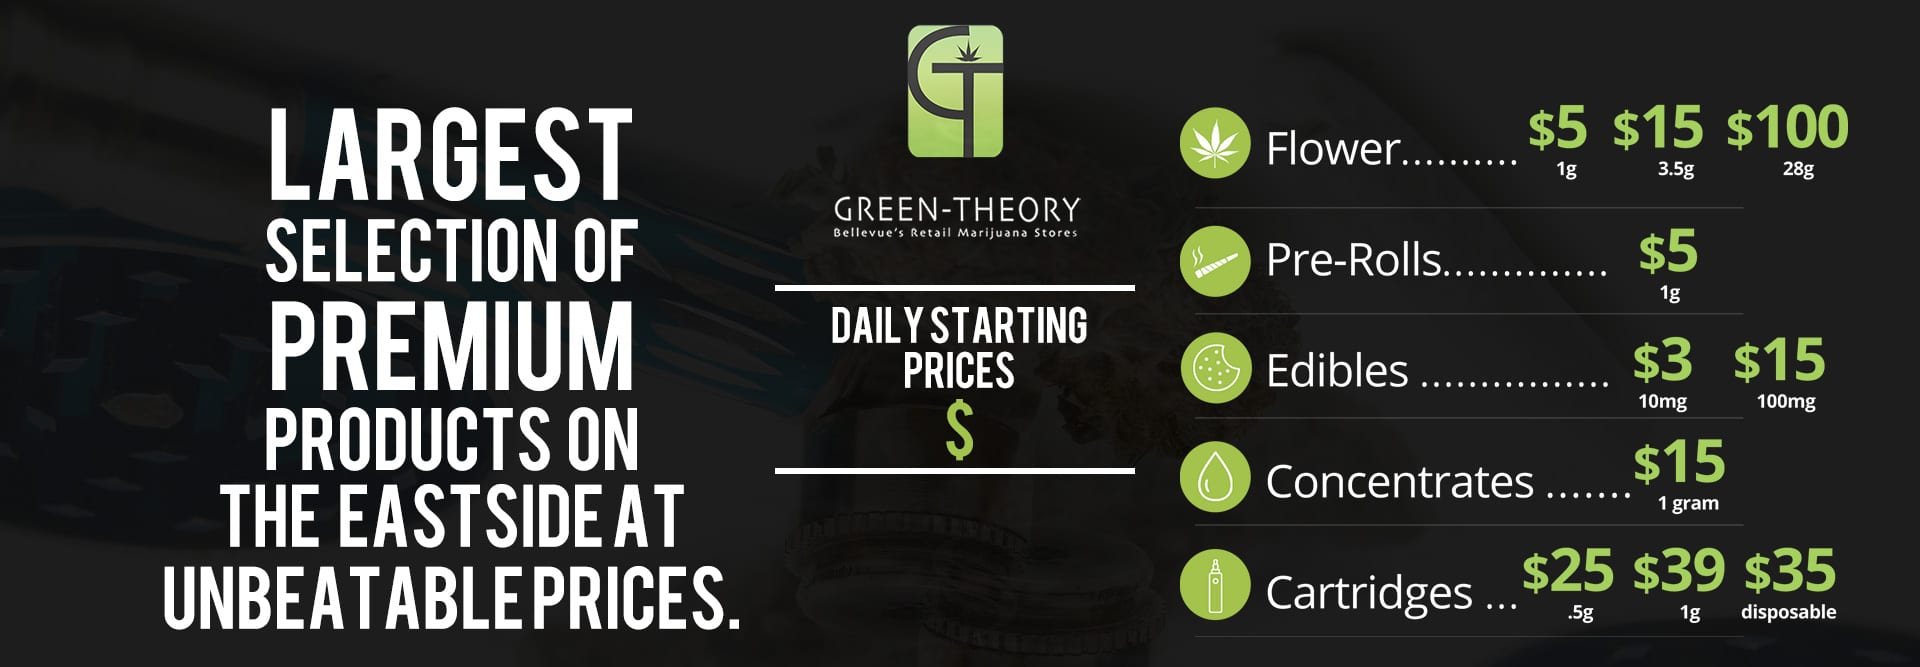 green-theory-starting-prices-28-100-1